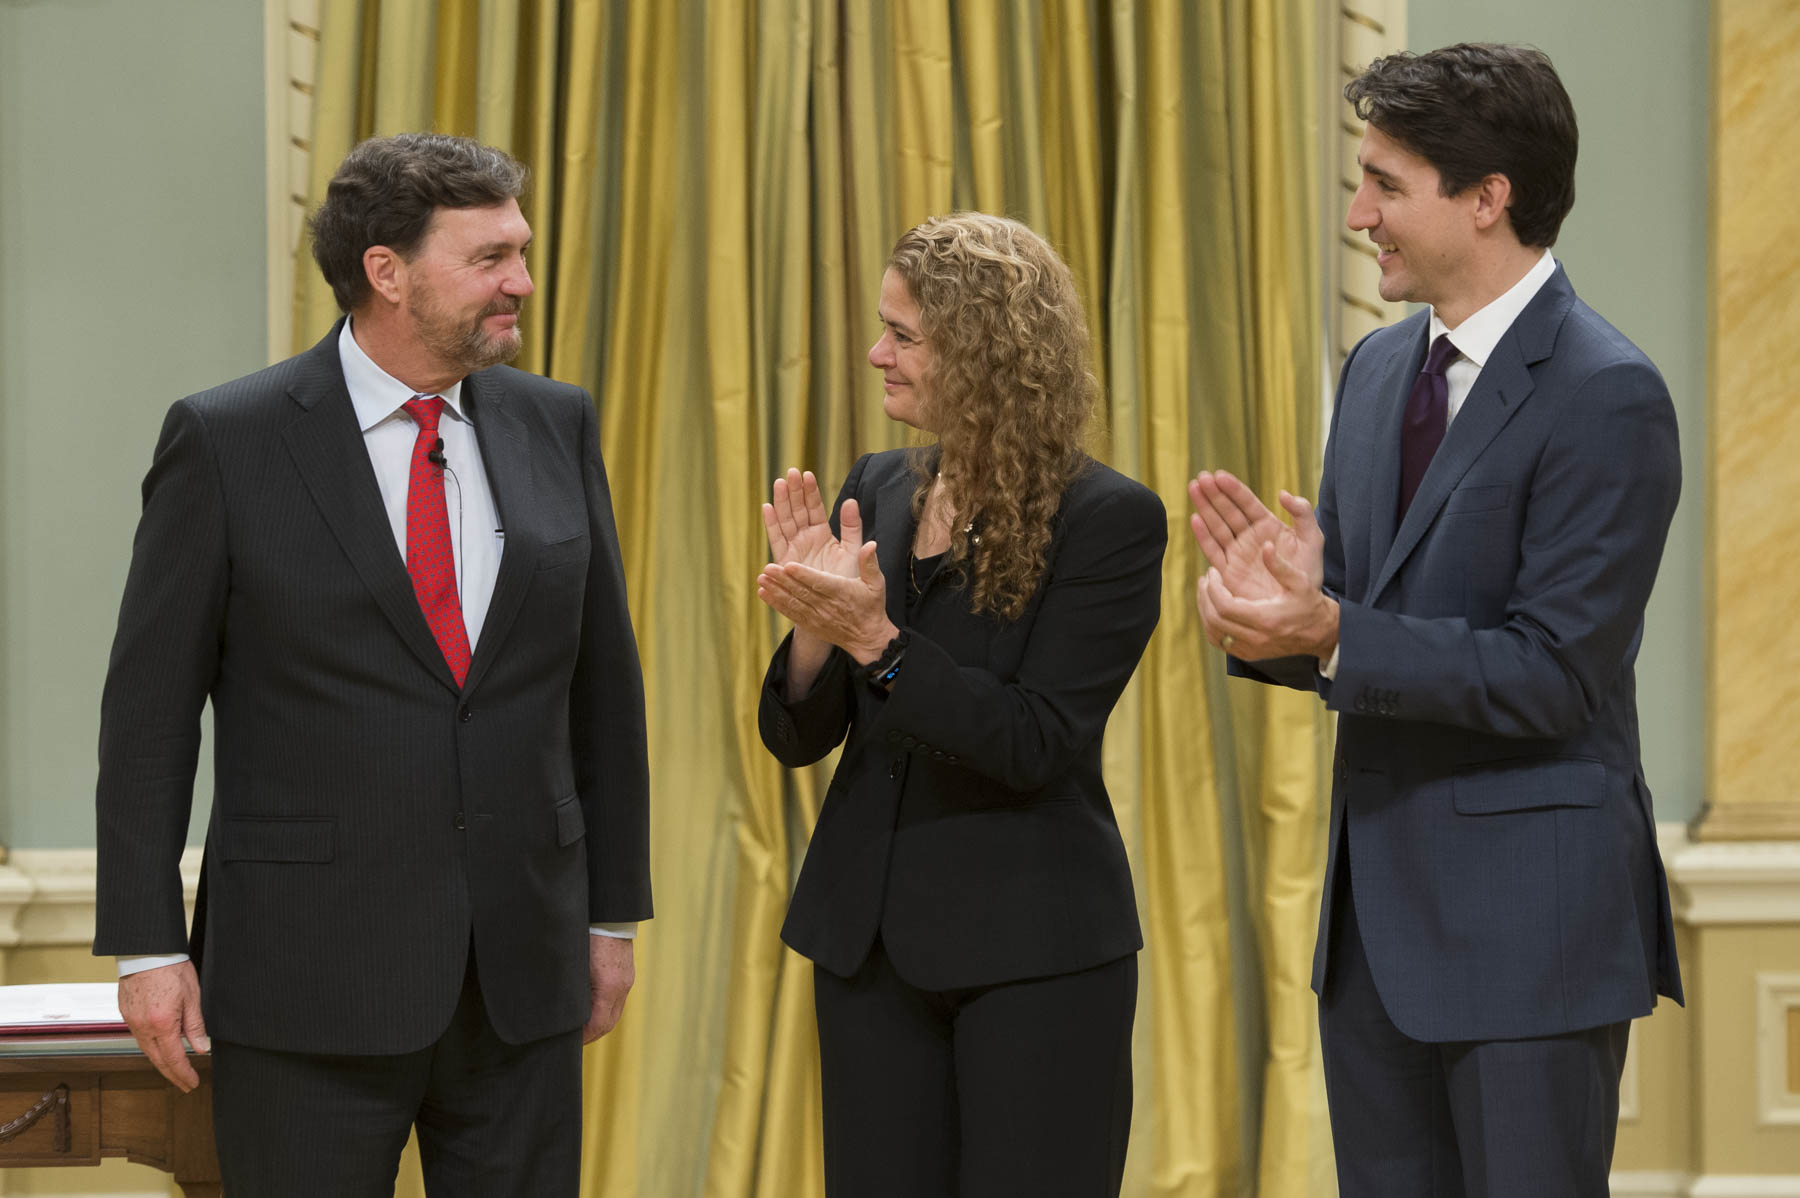 At the end of the signatures, all guests stood to applaud the new Chief Justice of Canada.